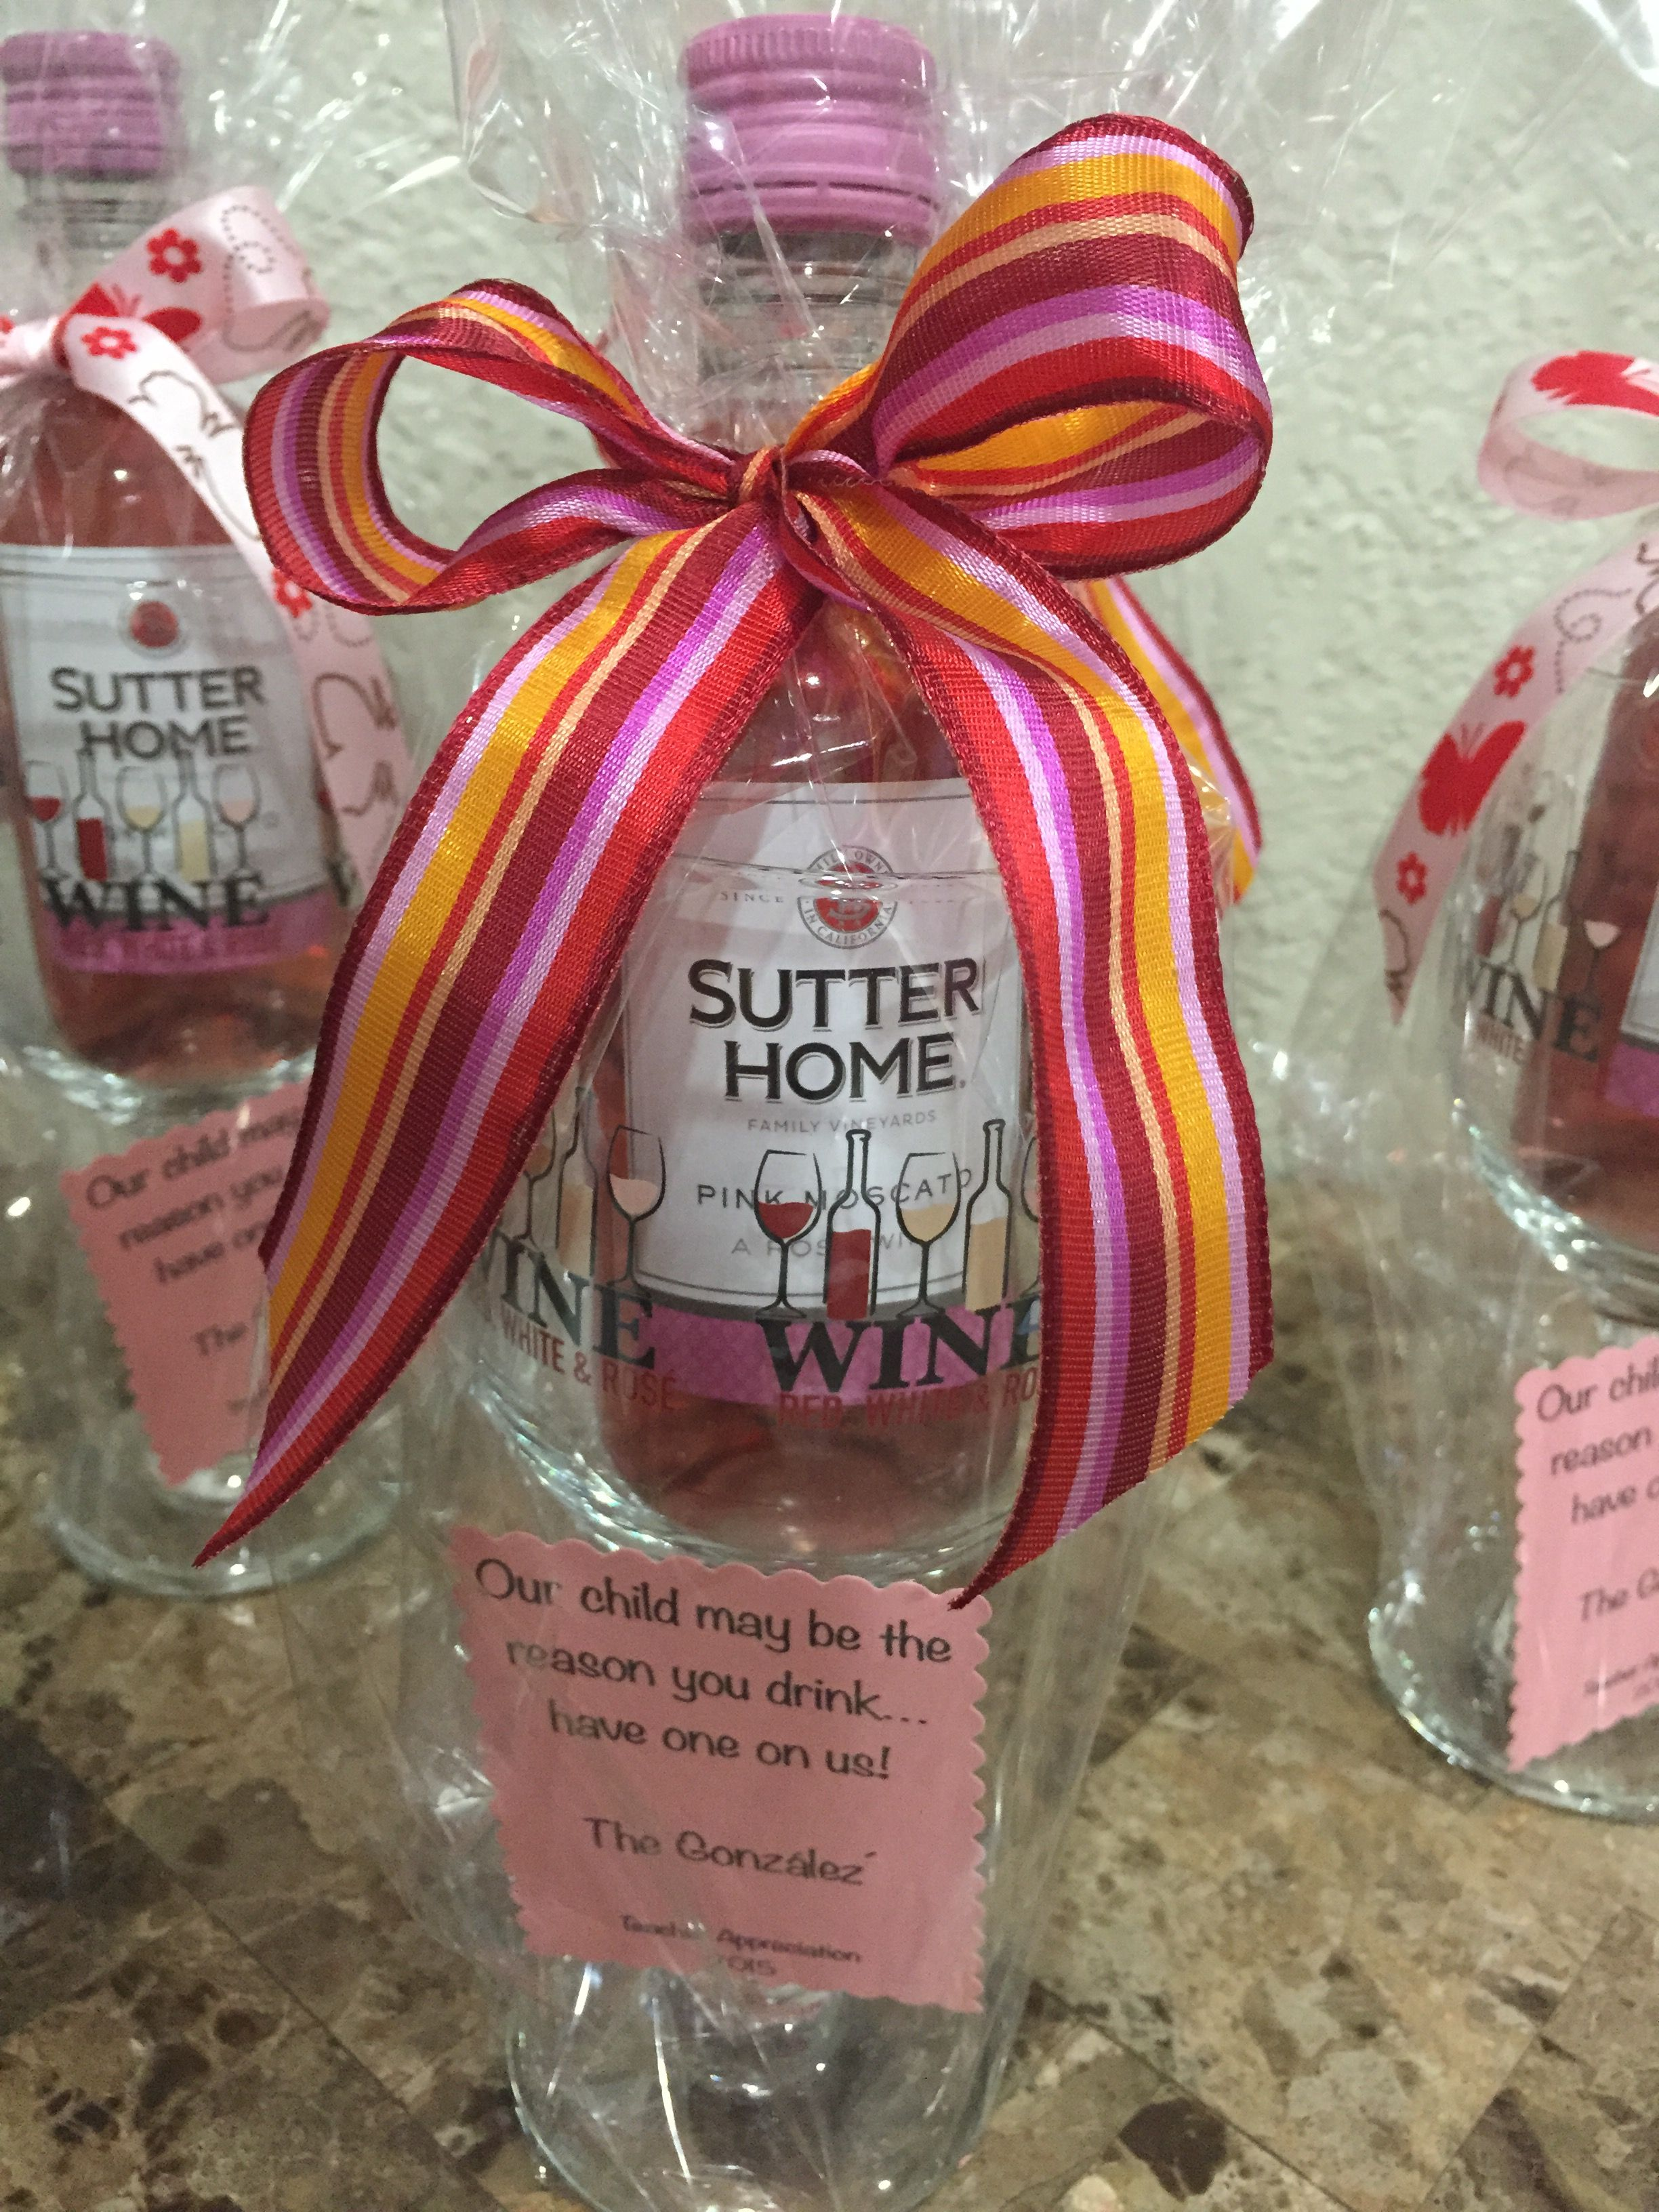 Teacher Appreciation Our Child May Be The Reason You Drink Have One On Us Mini Wine Bottle Diy Teacher Gifts Wine Teacher Gift Teacher Appreciation Gifts